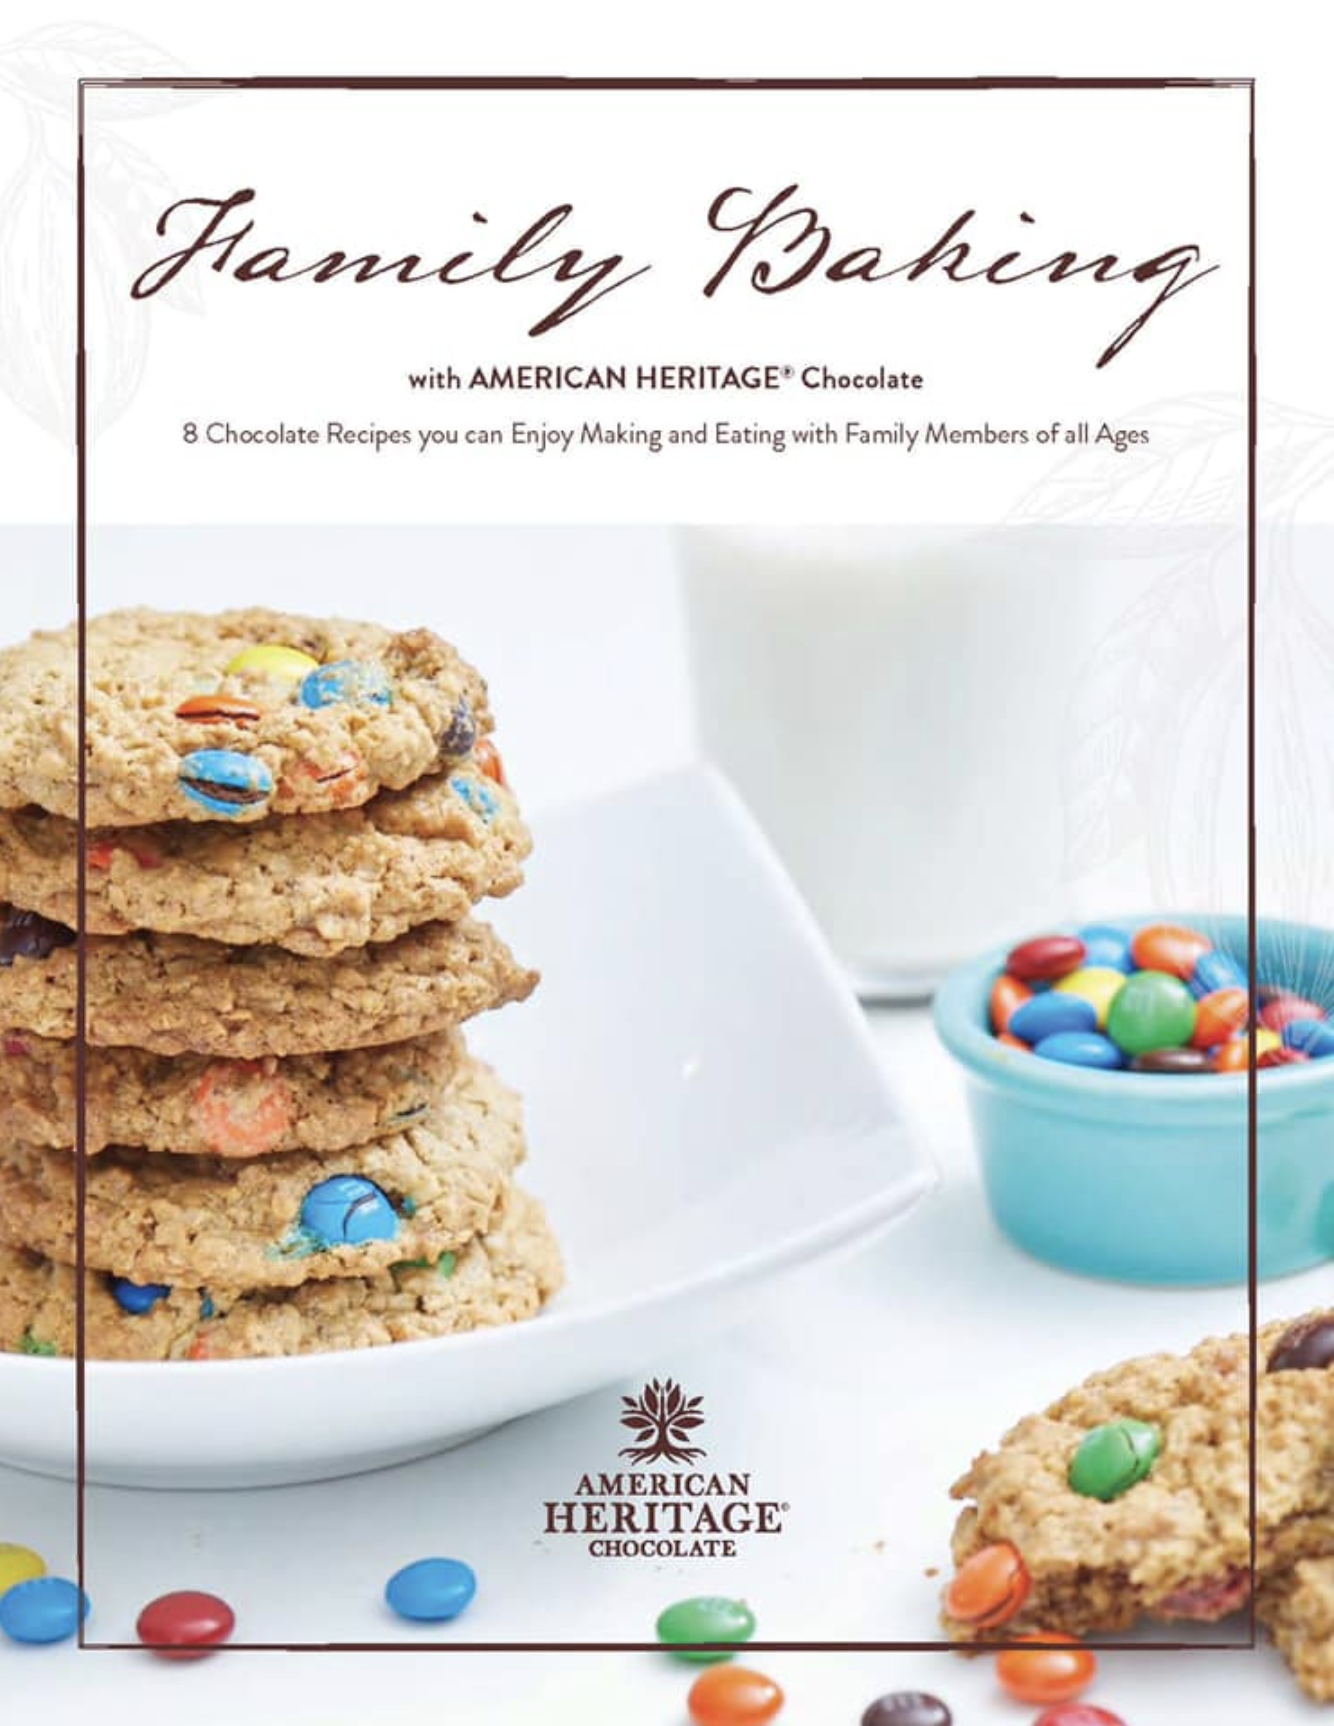 Free Family Baking Guide from AMERICAN HERITAGE Chocolate